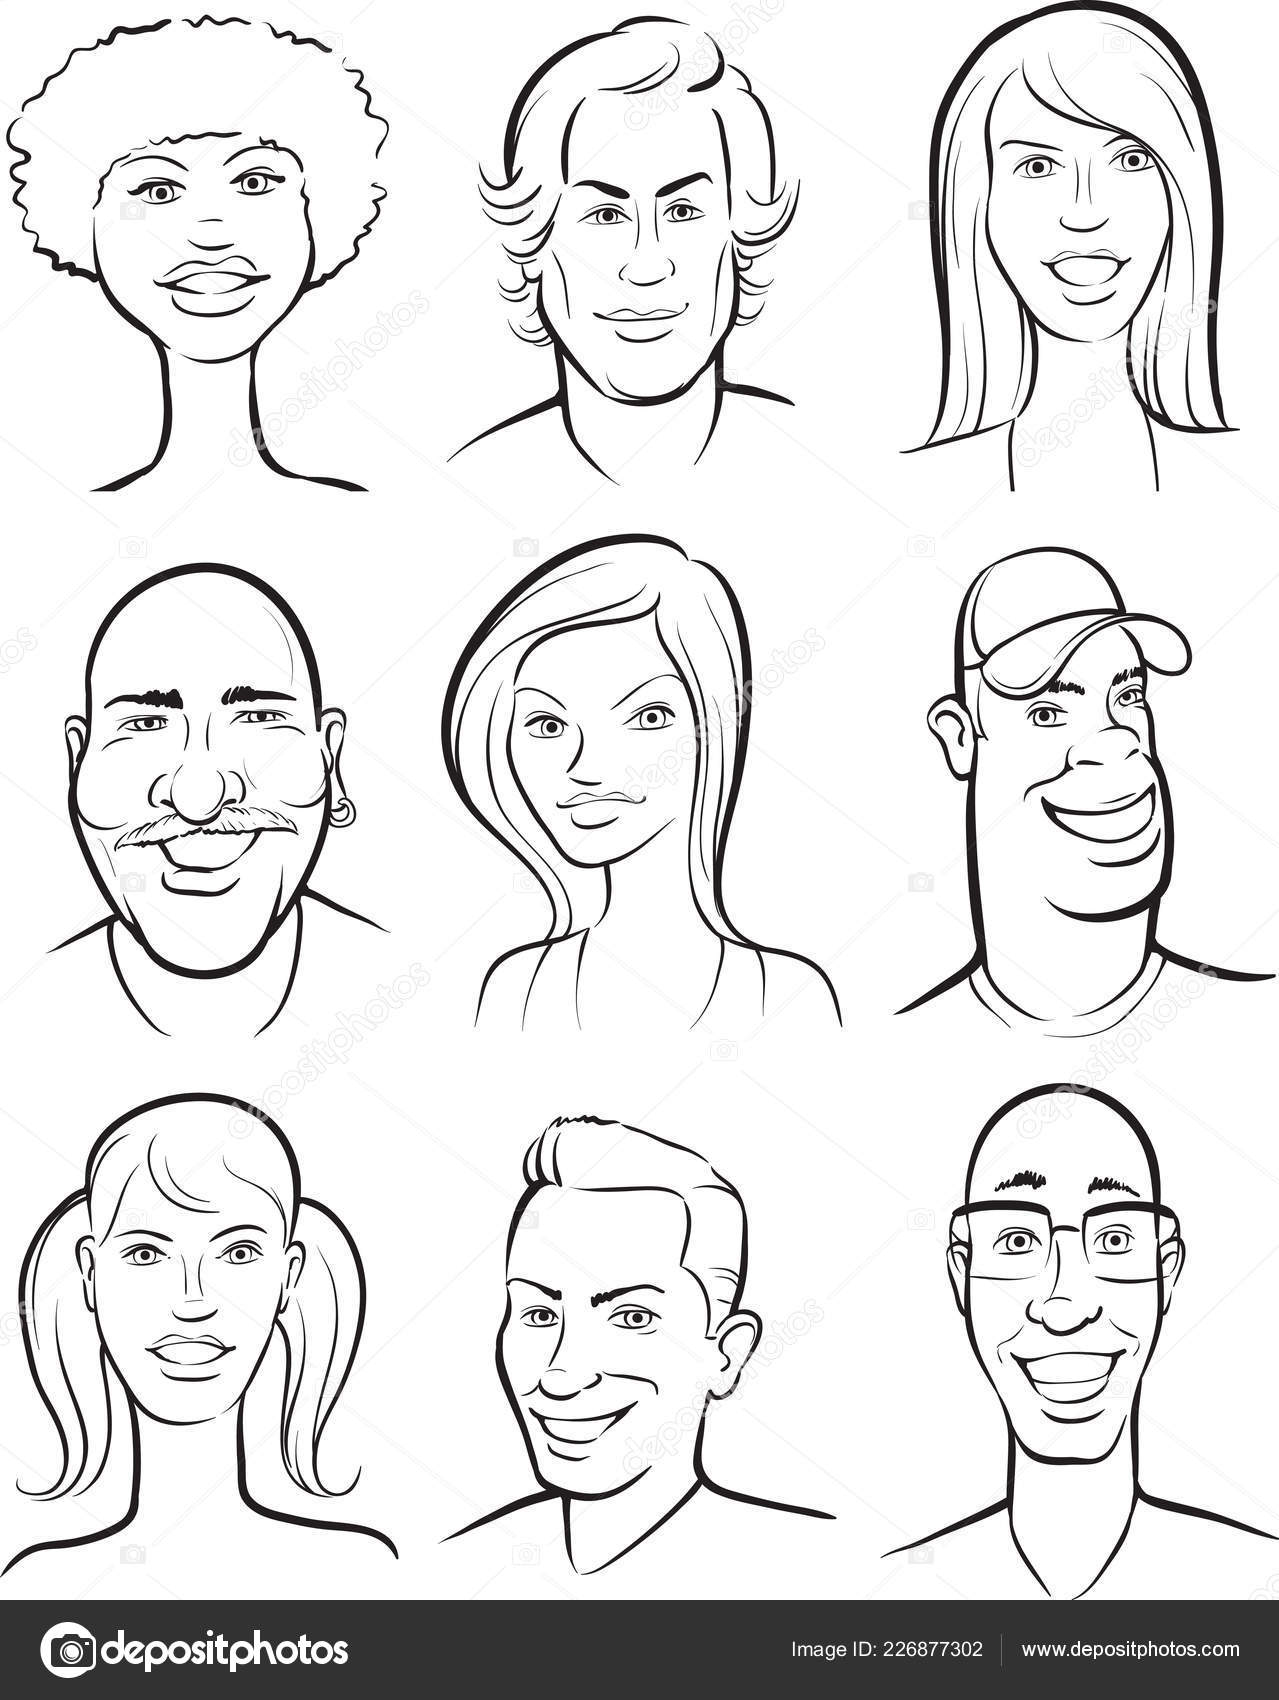 whiteboard drawing smiling people faces collection stock vector